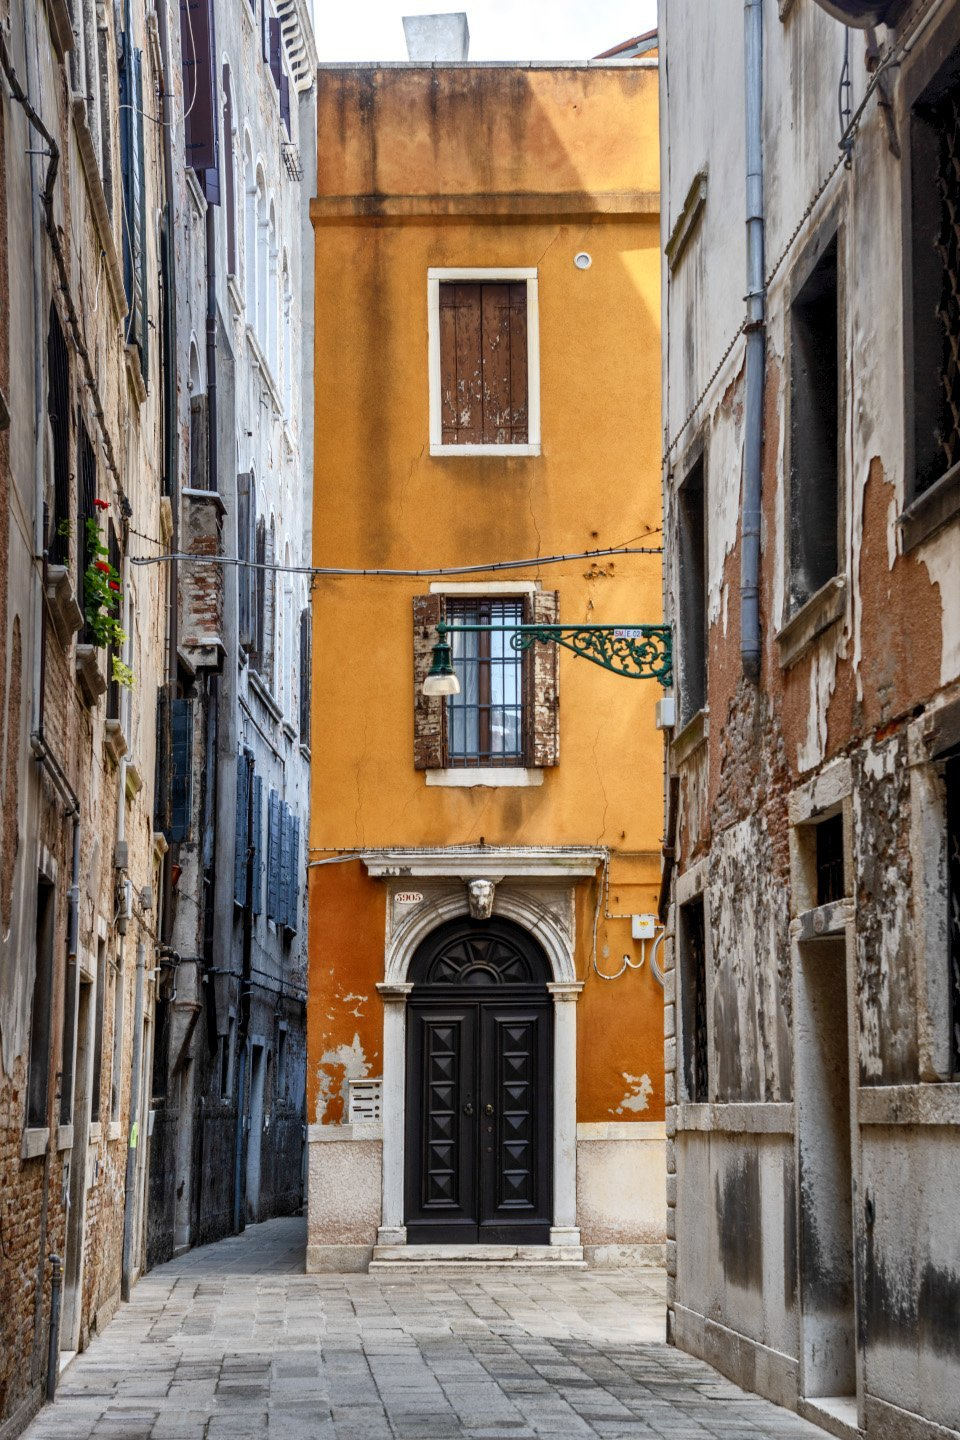 Door, Calle Pesaro, Venice, Italy, July 14, 2018